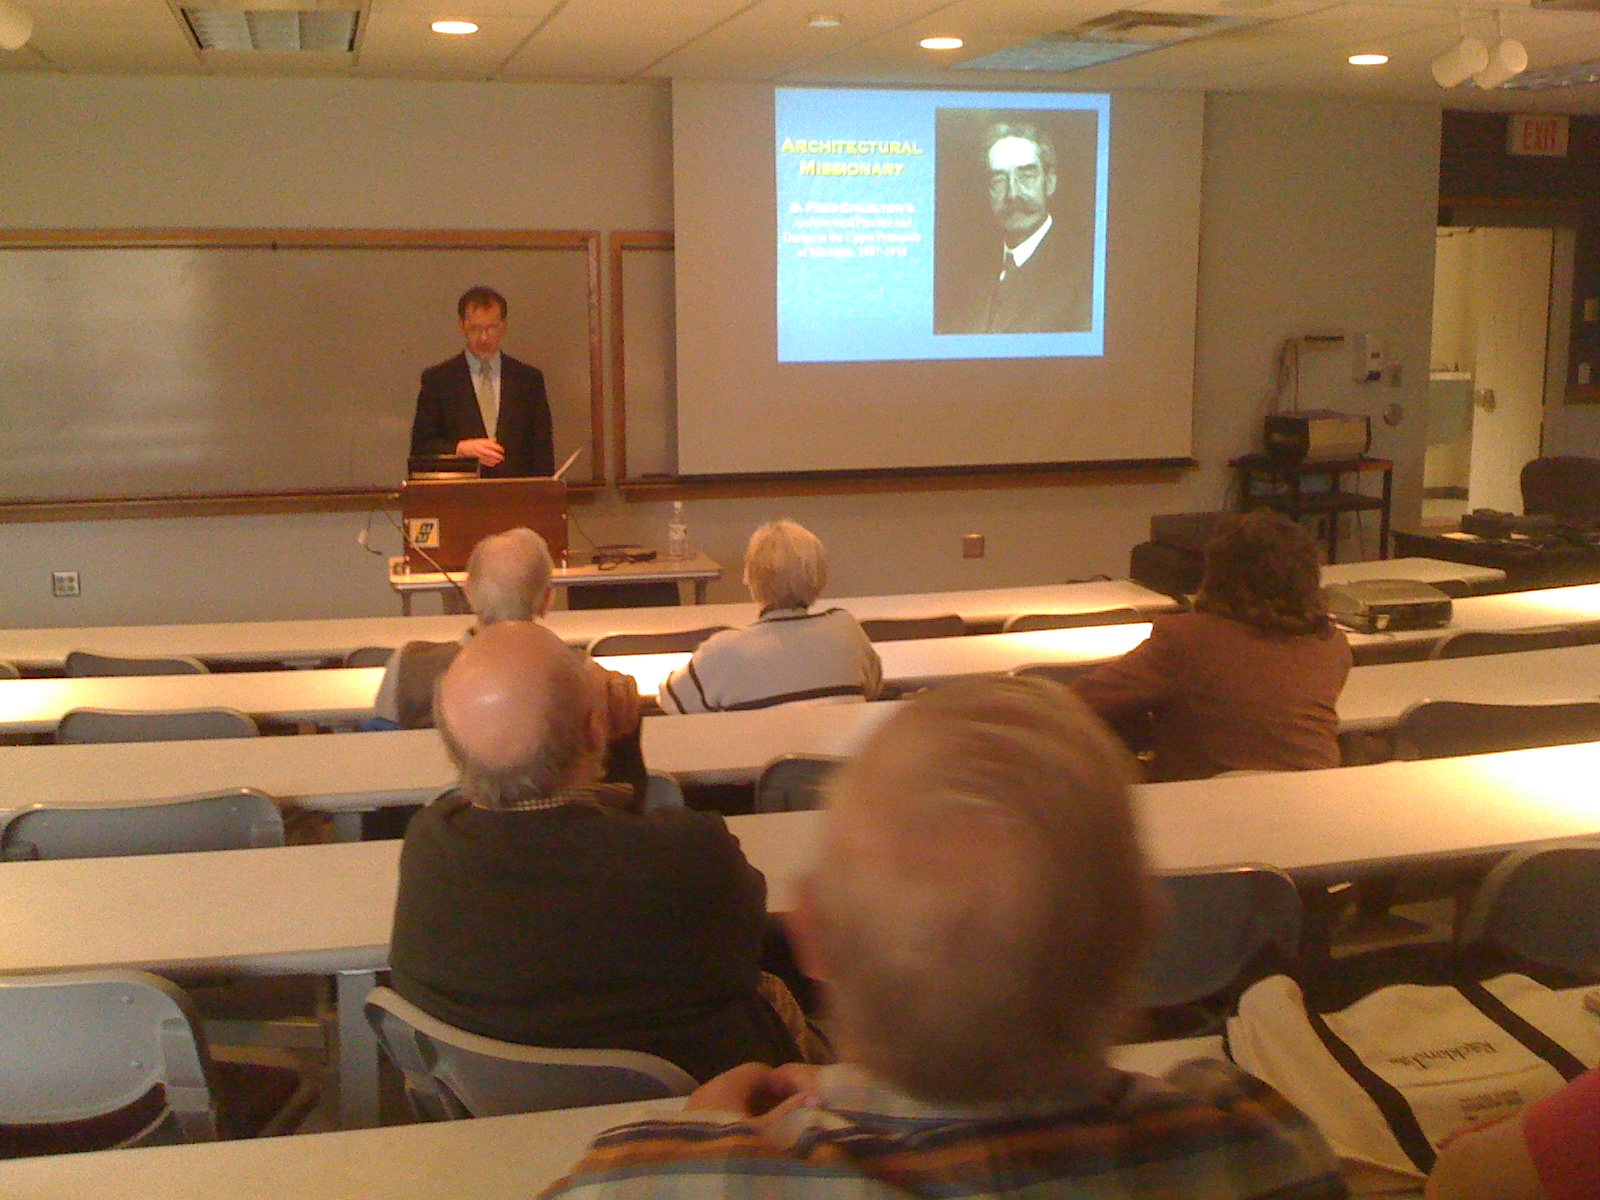 Steve Brisson speaks on the life and architectural work of Frederick Charlton.